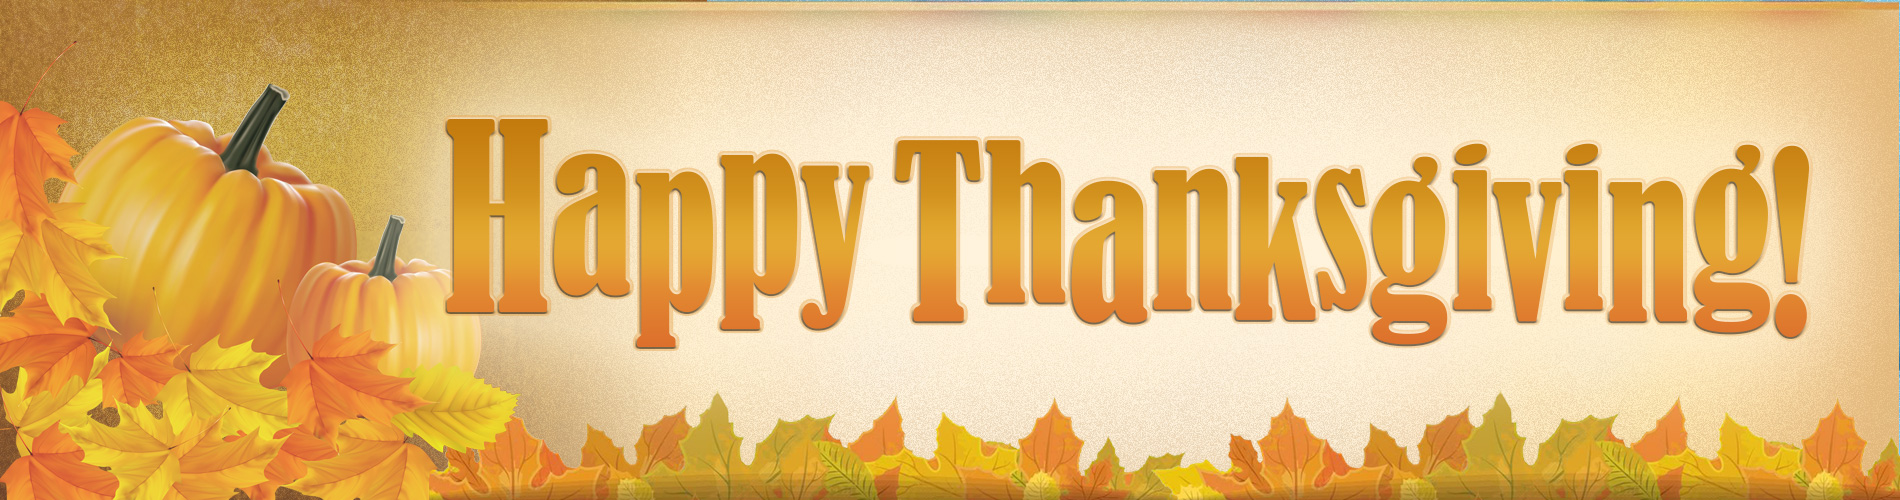 Happy Thanksgiving Home Page Banner